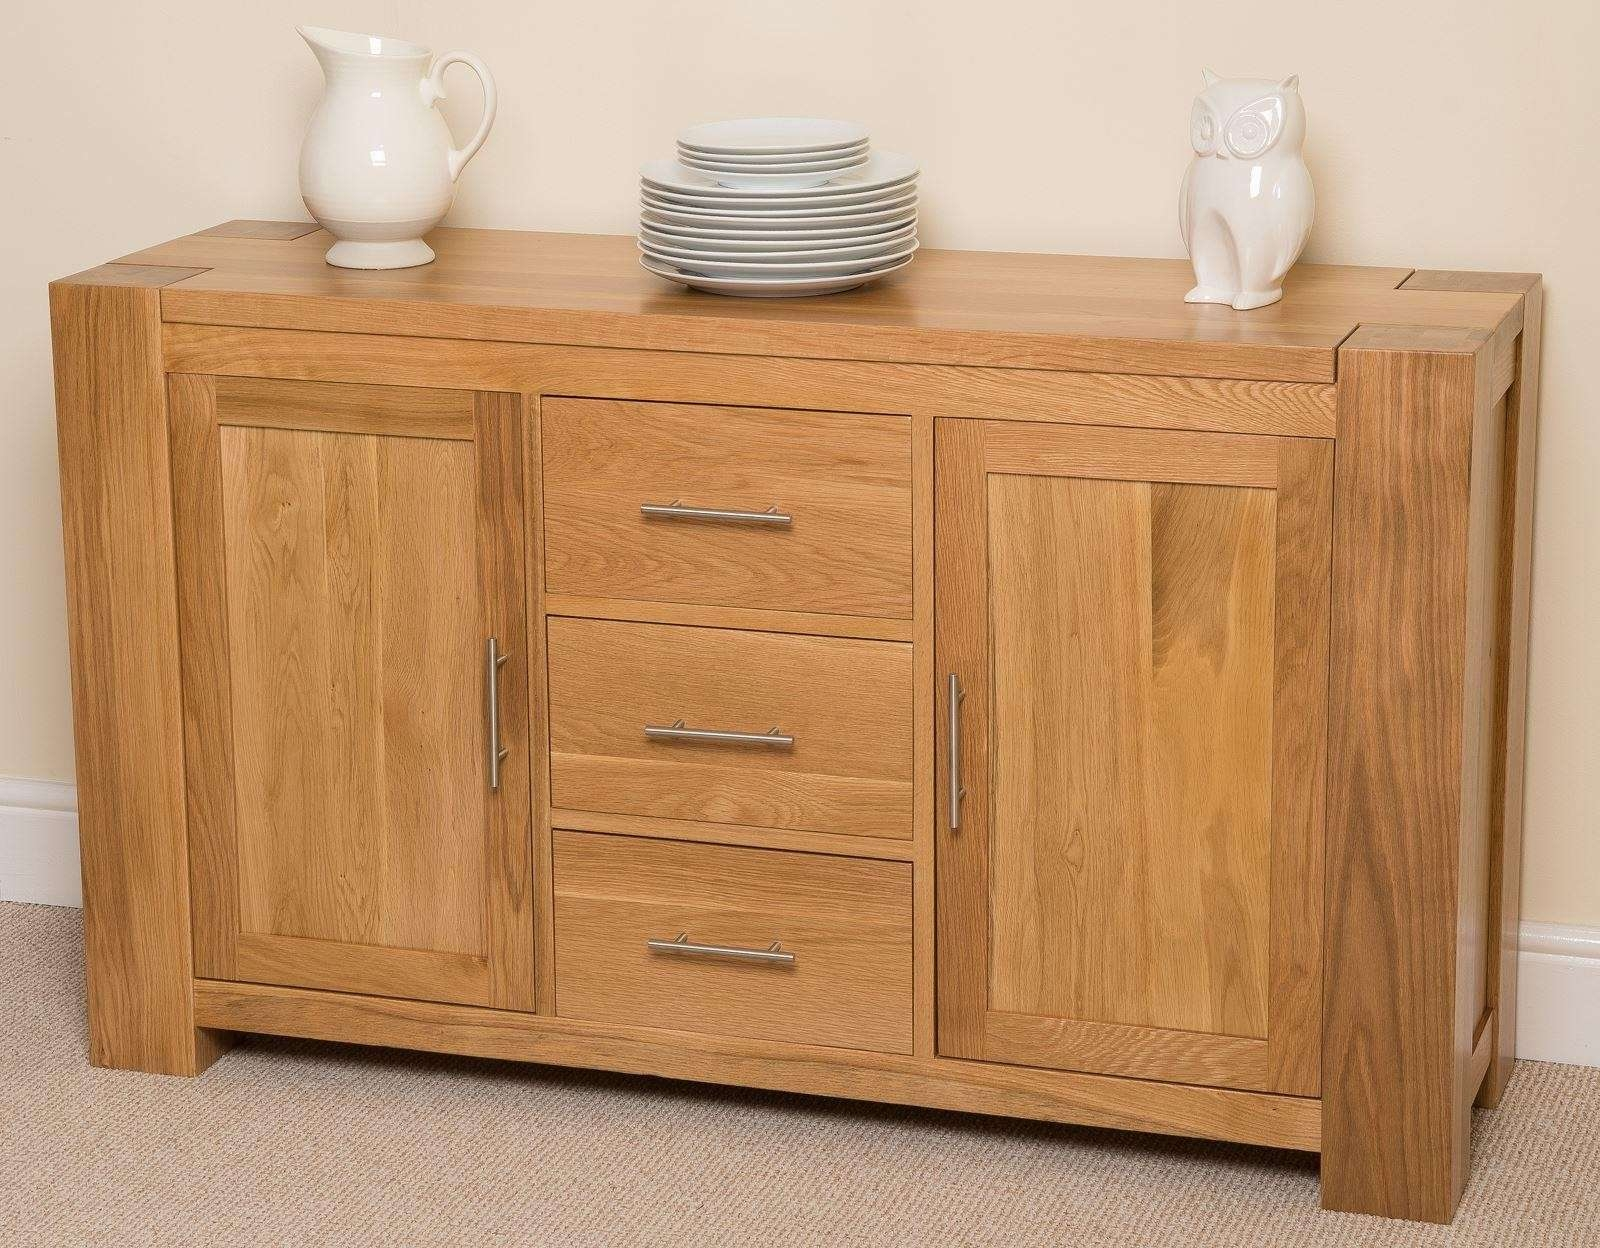 Kuba Solid Large Oak Sideboard | Free Uk Delivery With Solid Oak Sideboards (View 9 of 20)